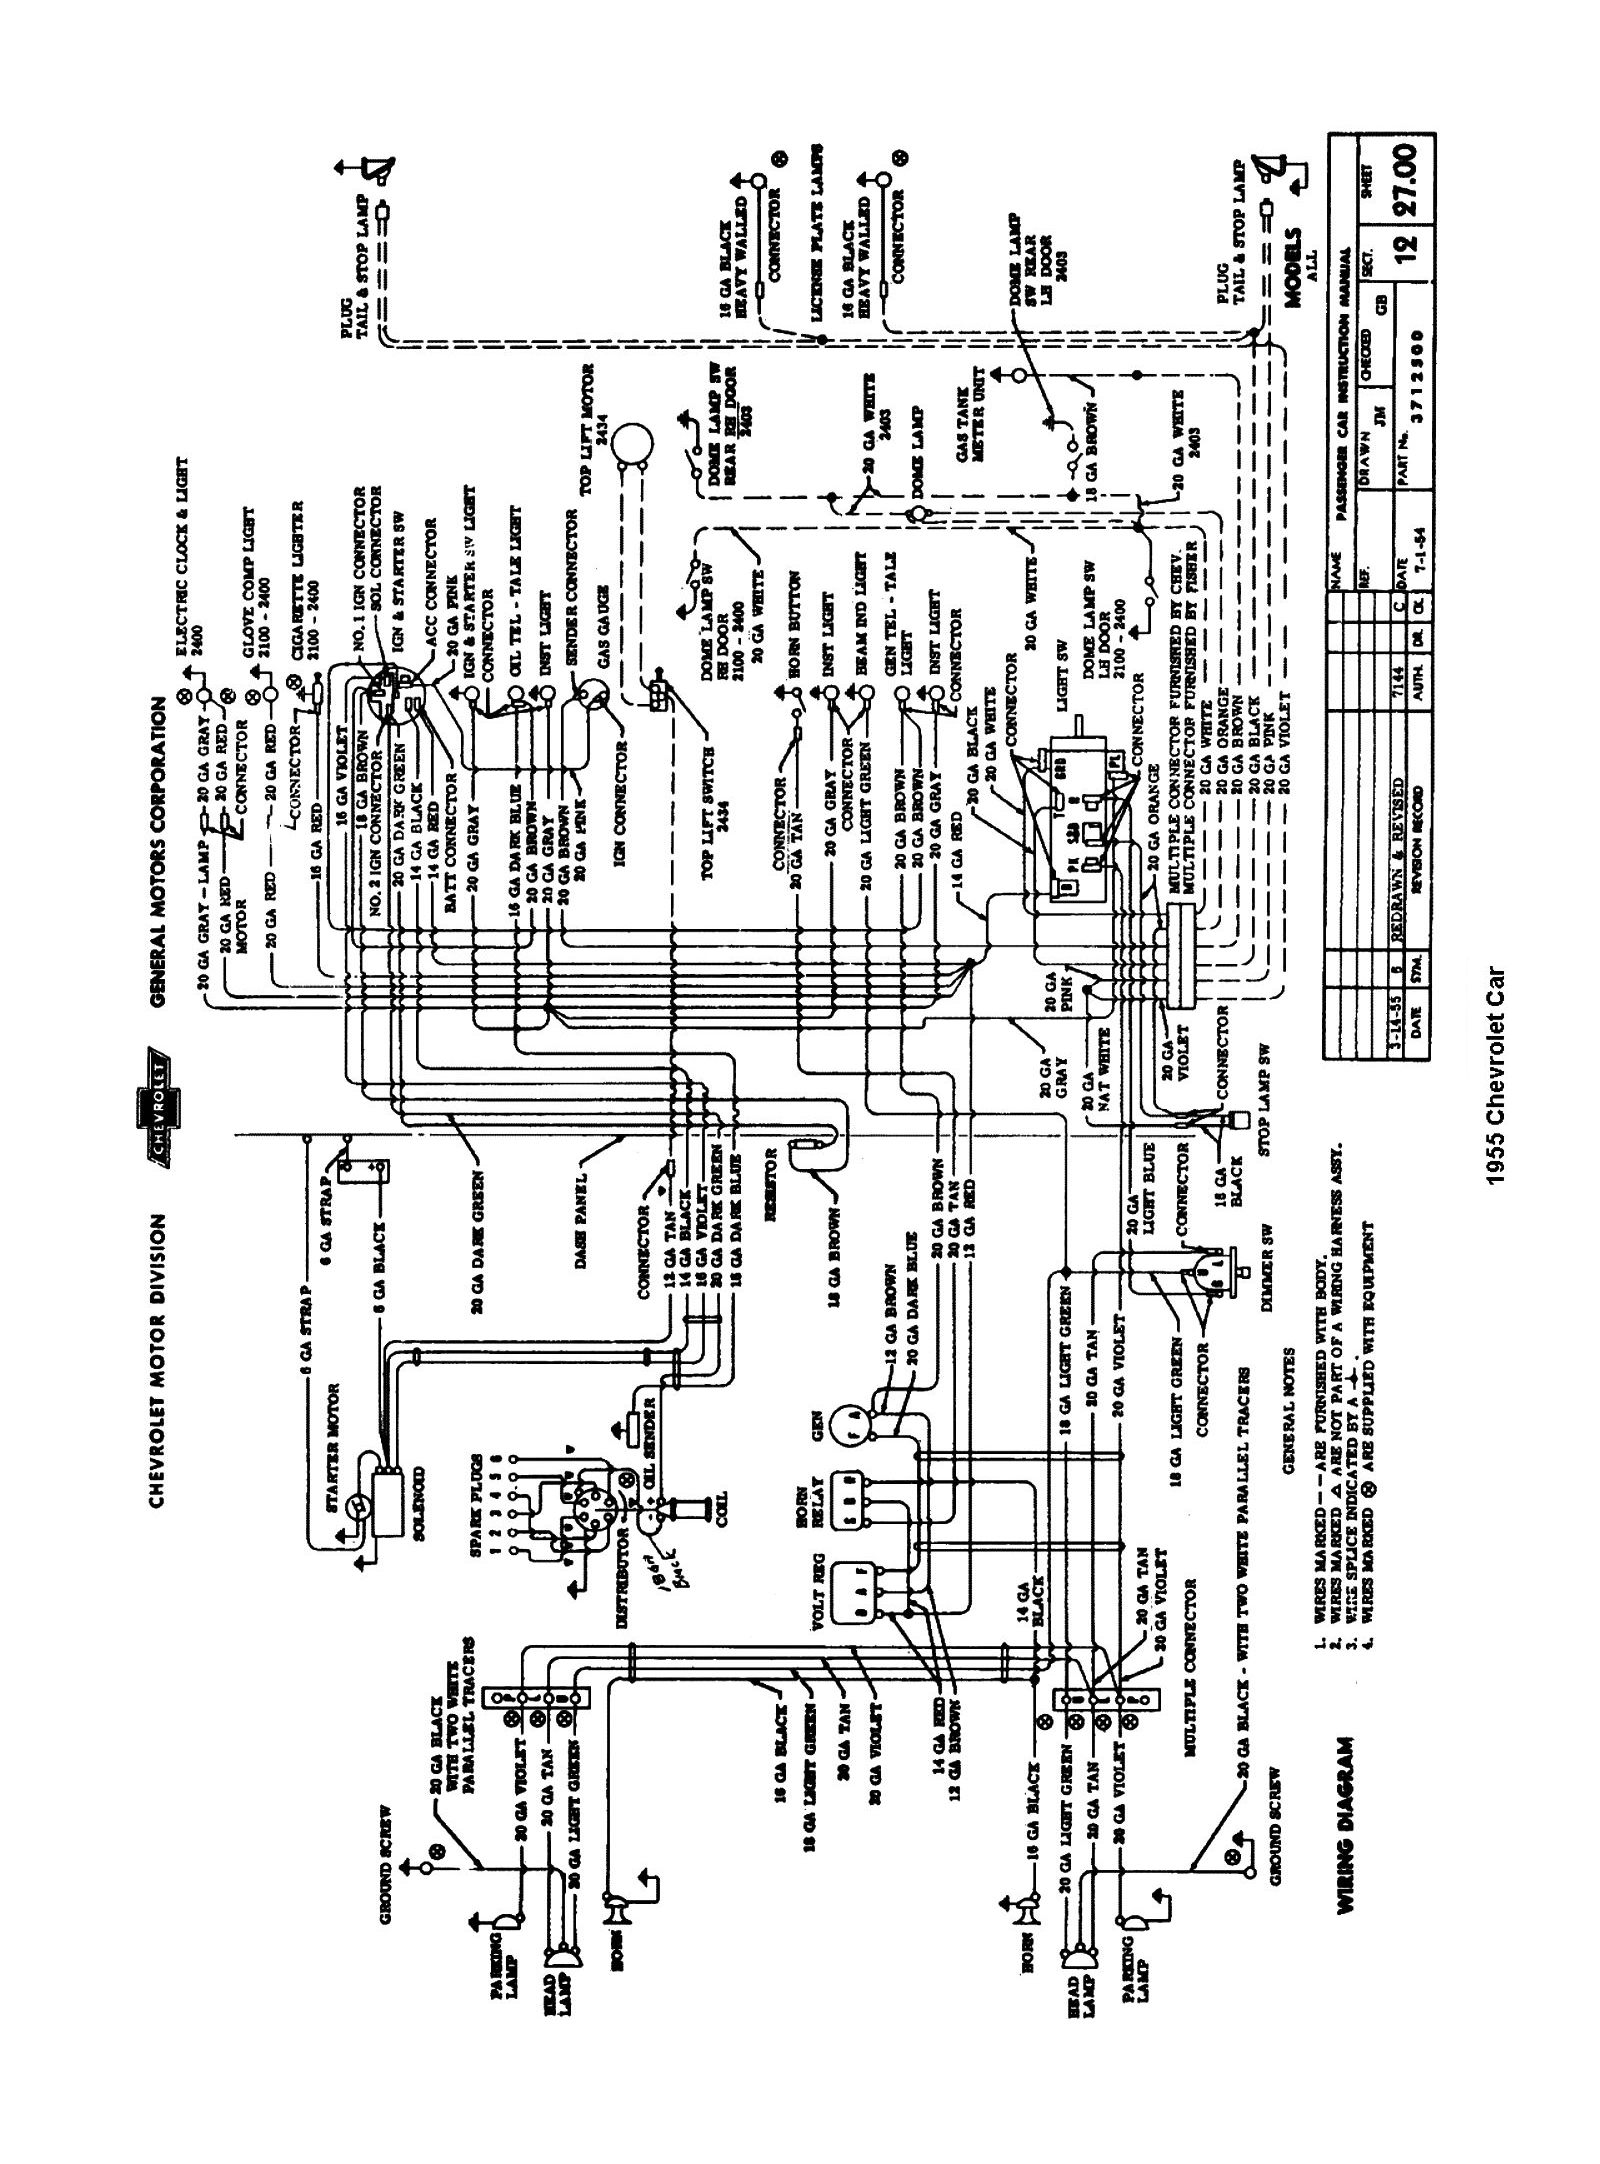 55car1 chevy wiring diagrams 1956 Bel Air Wiring Diagram at soozxer.org